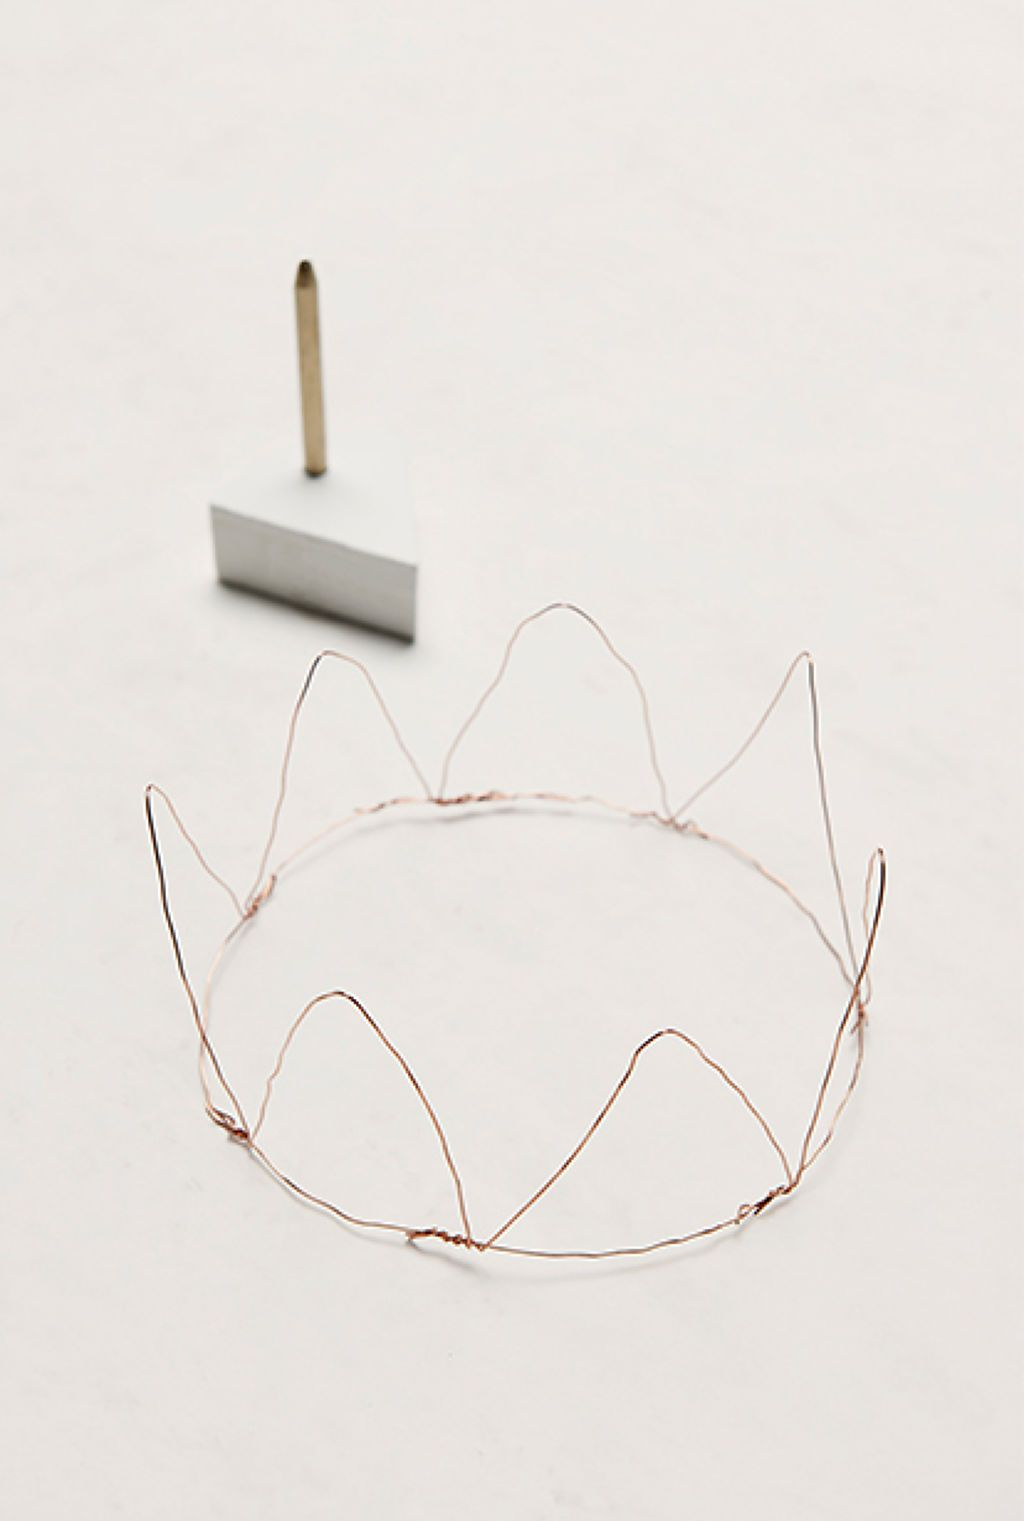 ZARA United States | DIY | Pinterest | Minis, Crown and Wire crown